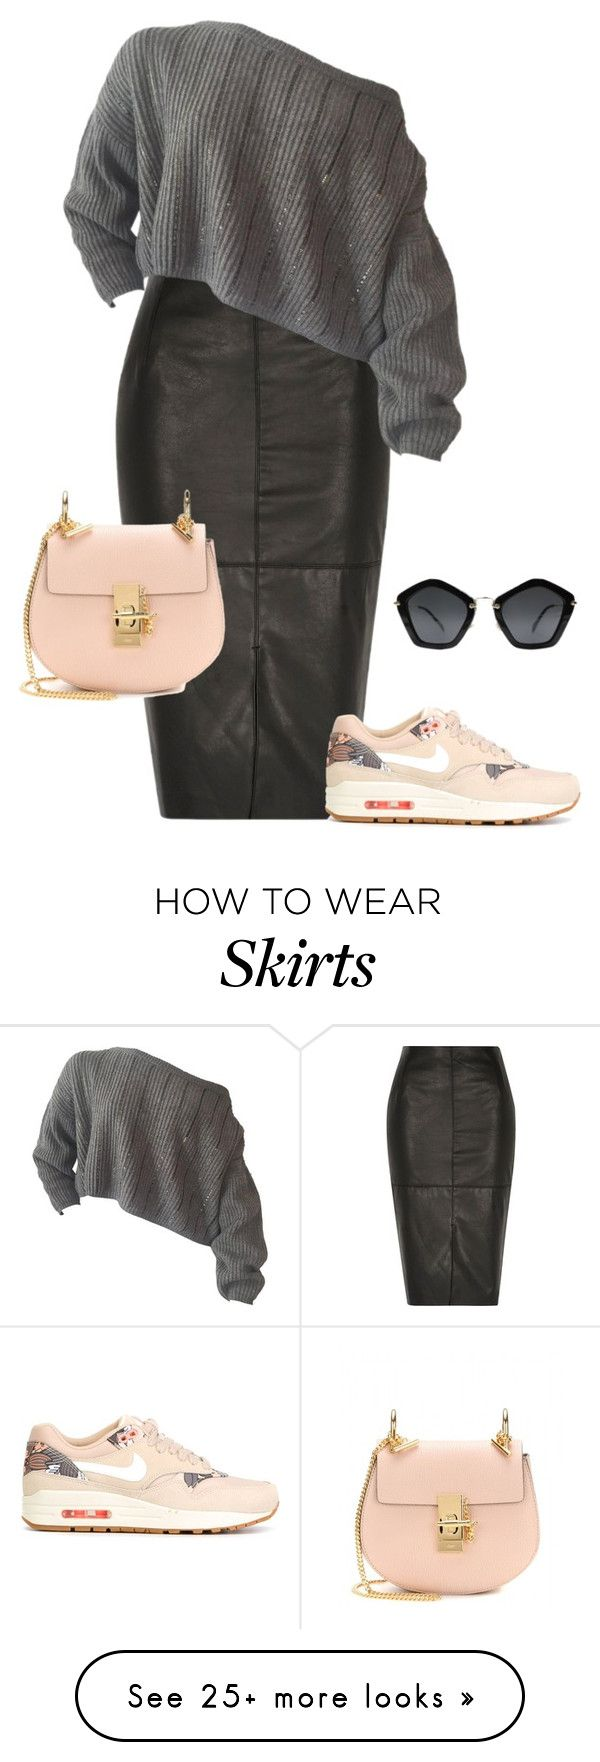 """leather skirt"" by part-time-fashionista on Polyvore featuring River Island, NIKE, Chloé and Miu Miu"